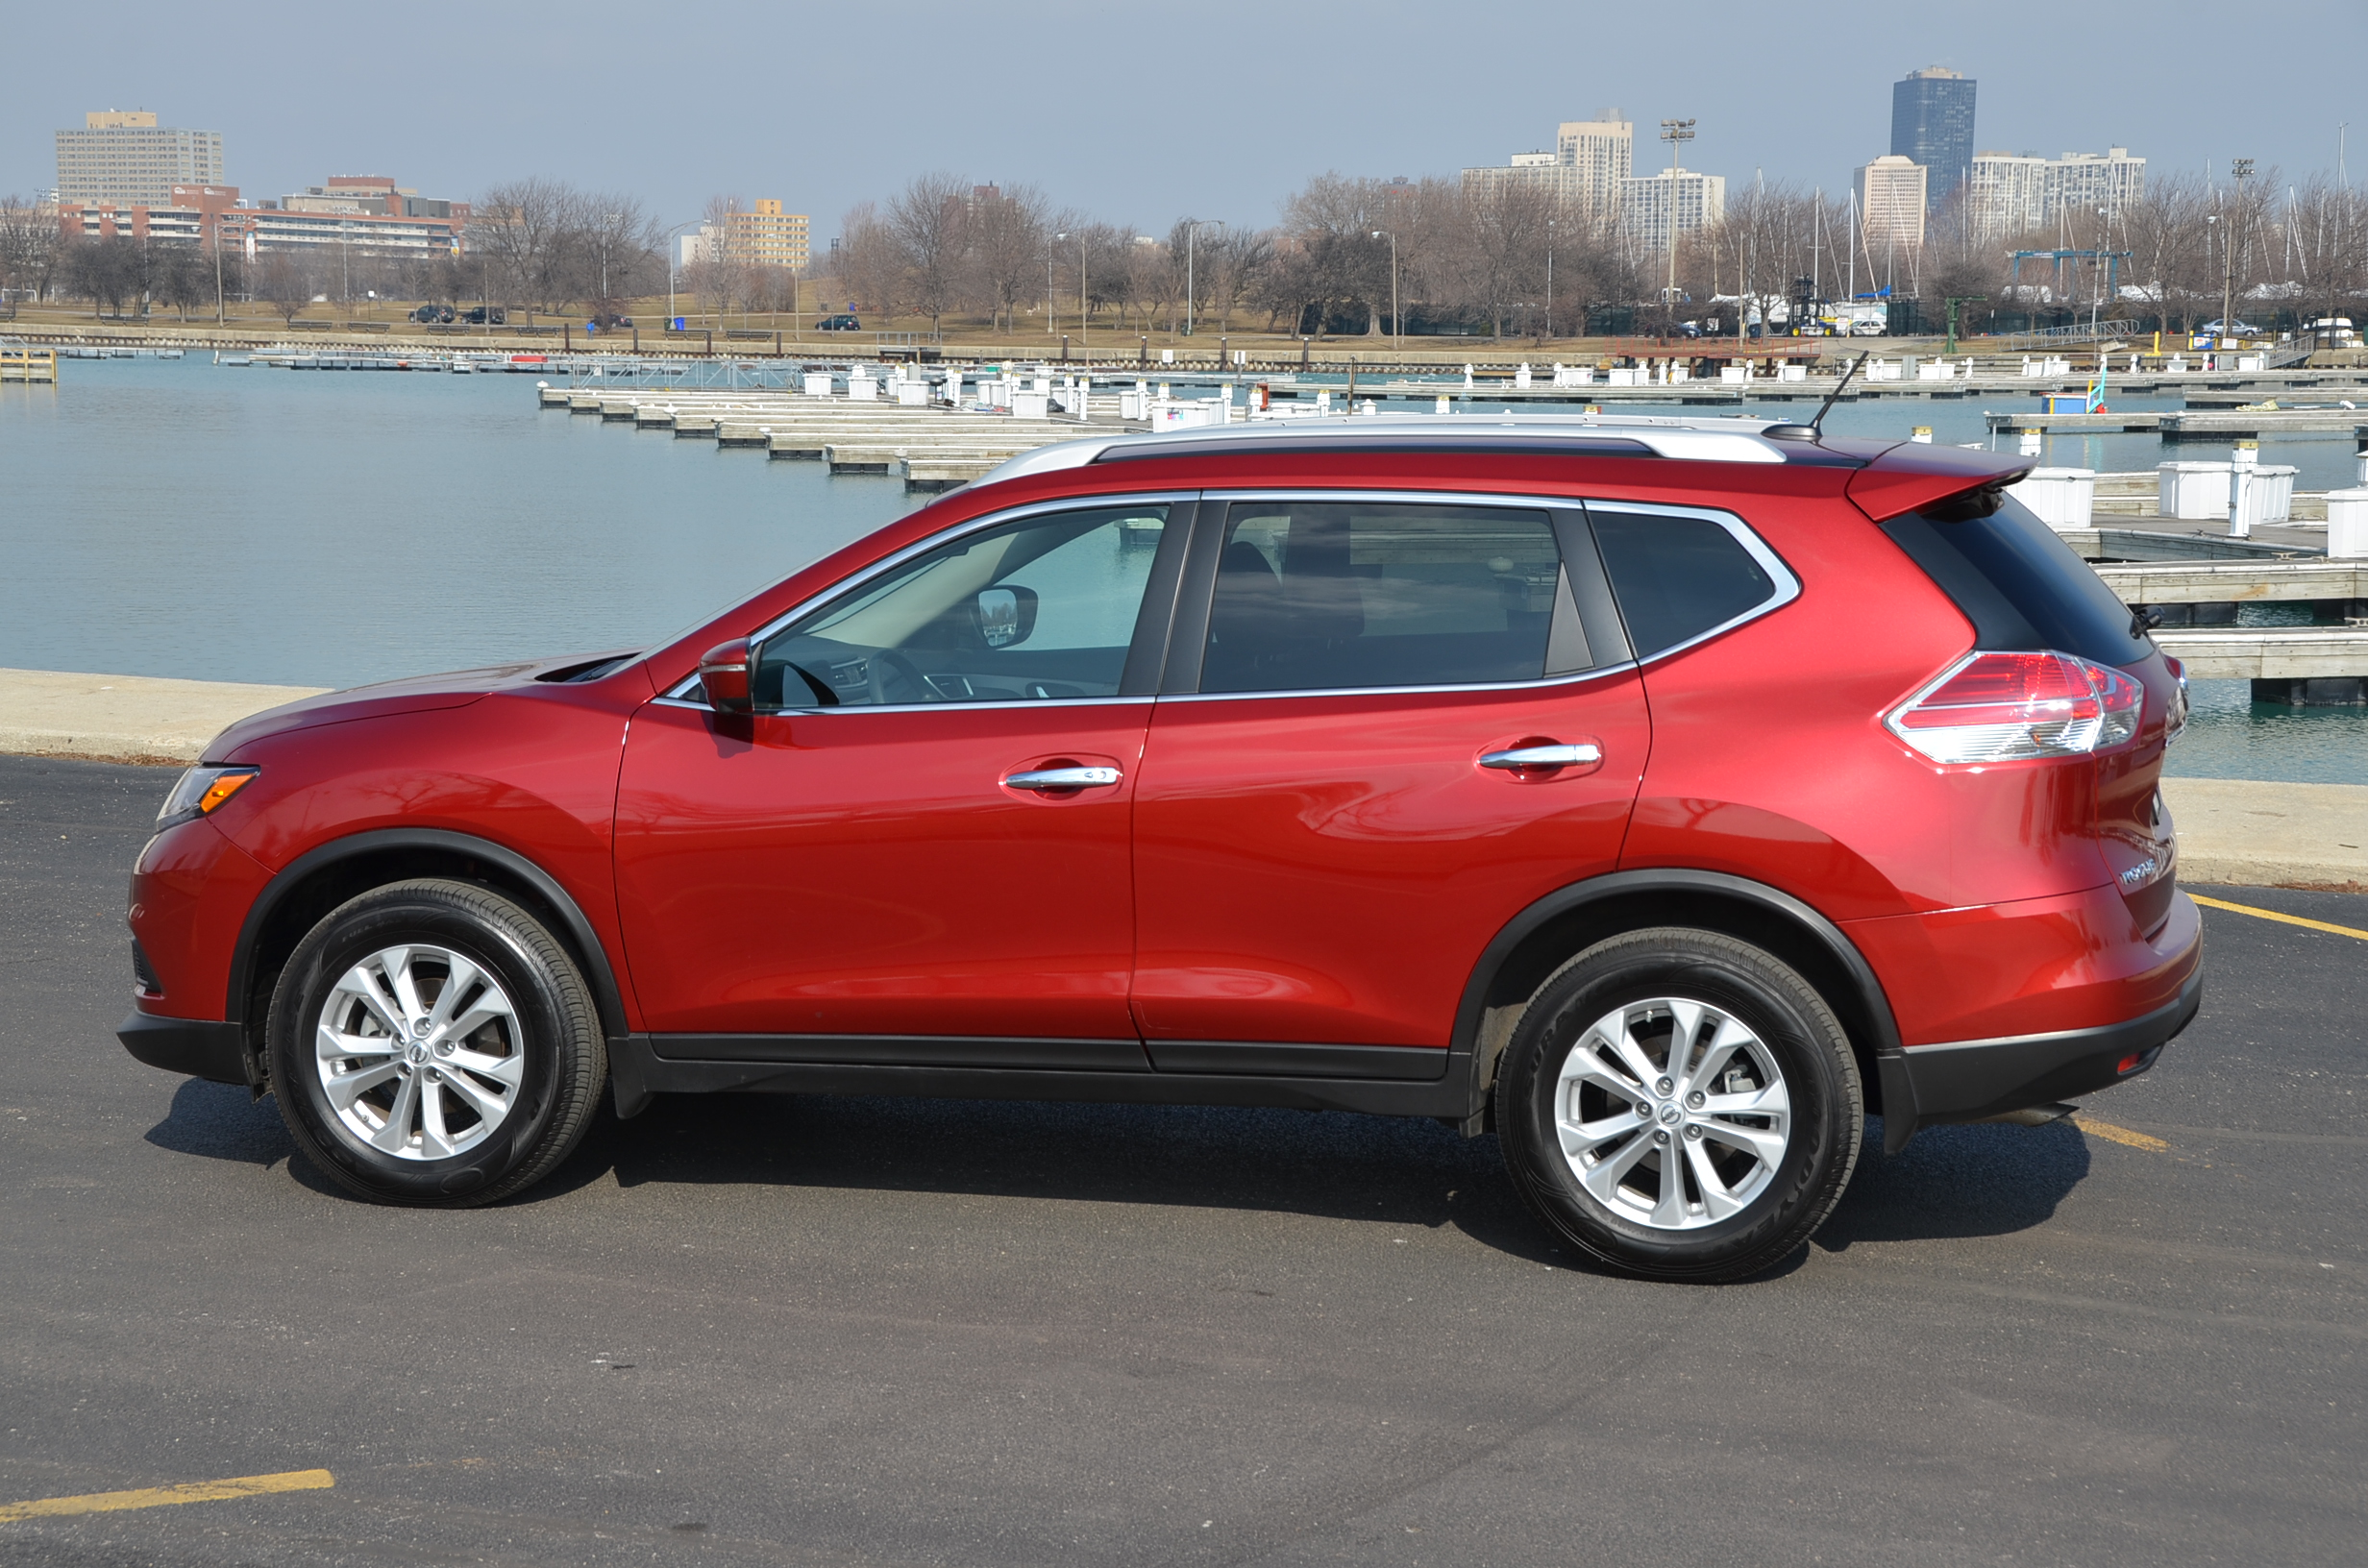 nissan rogue hd jade zoom news the midnight overview view wheel side